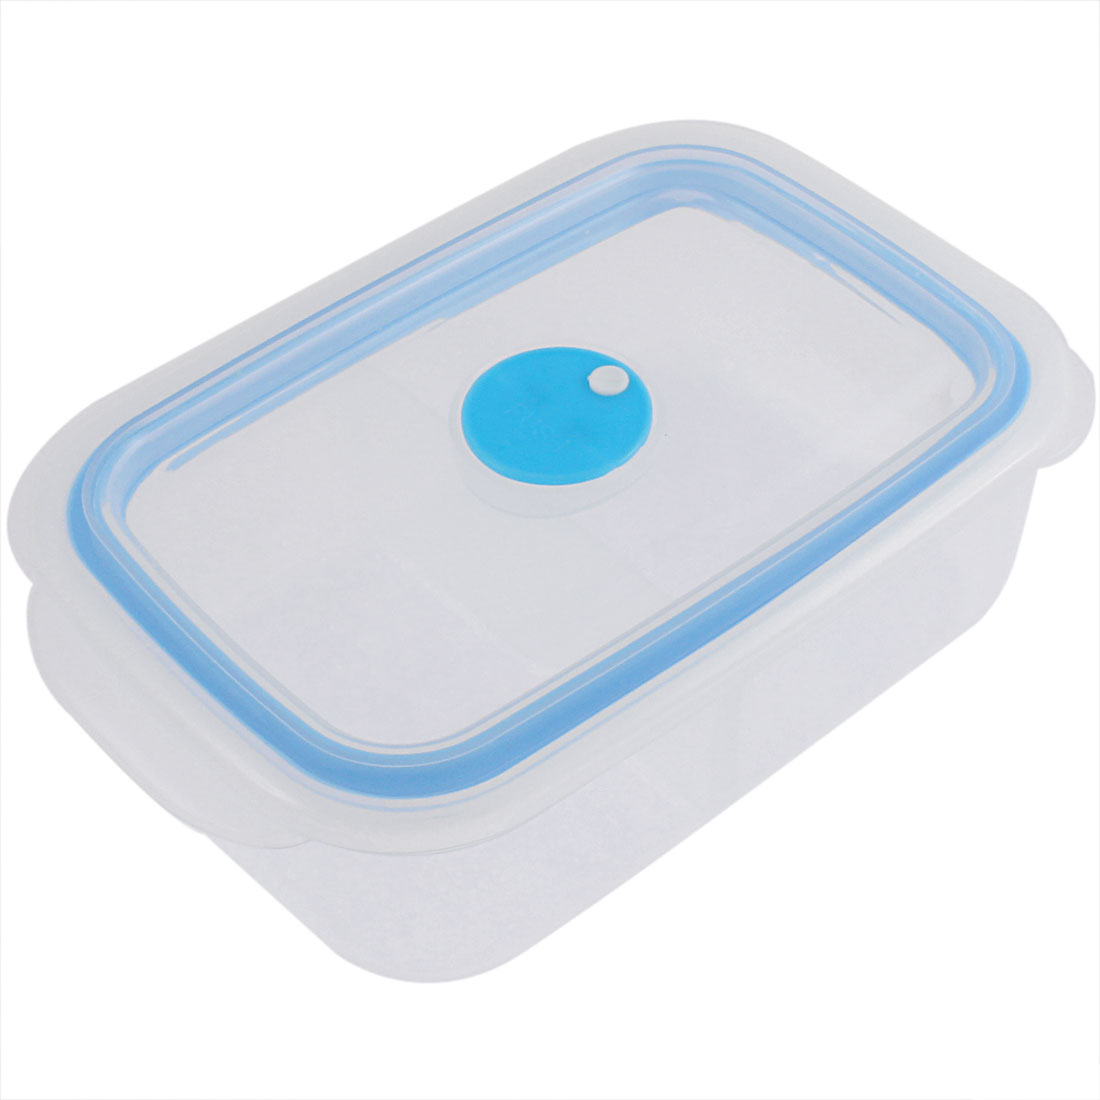 Home School Dual Compartments Salad Food Storage Lunch Box Blue